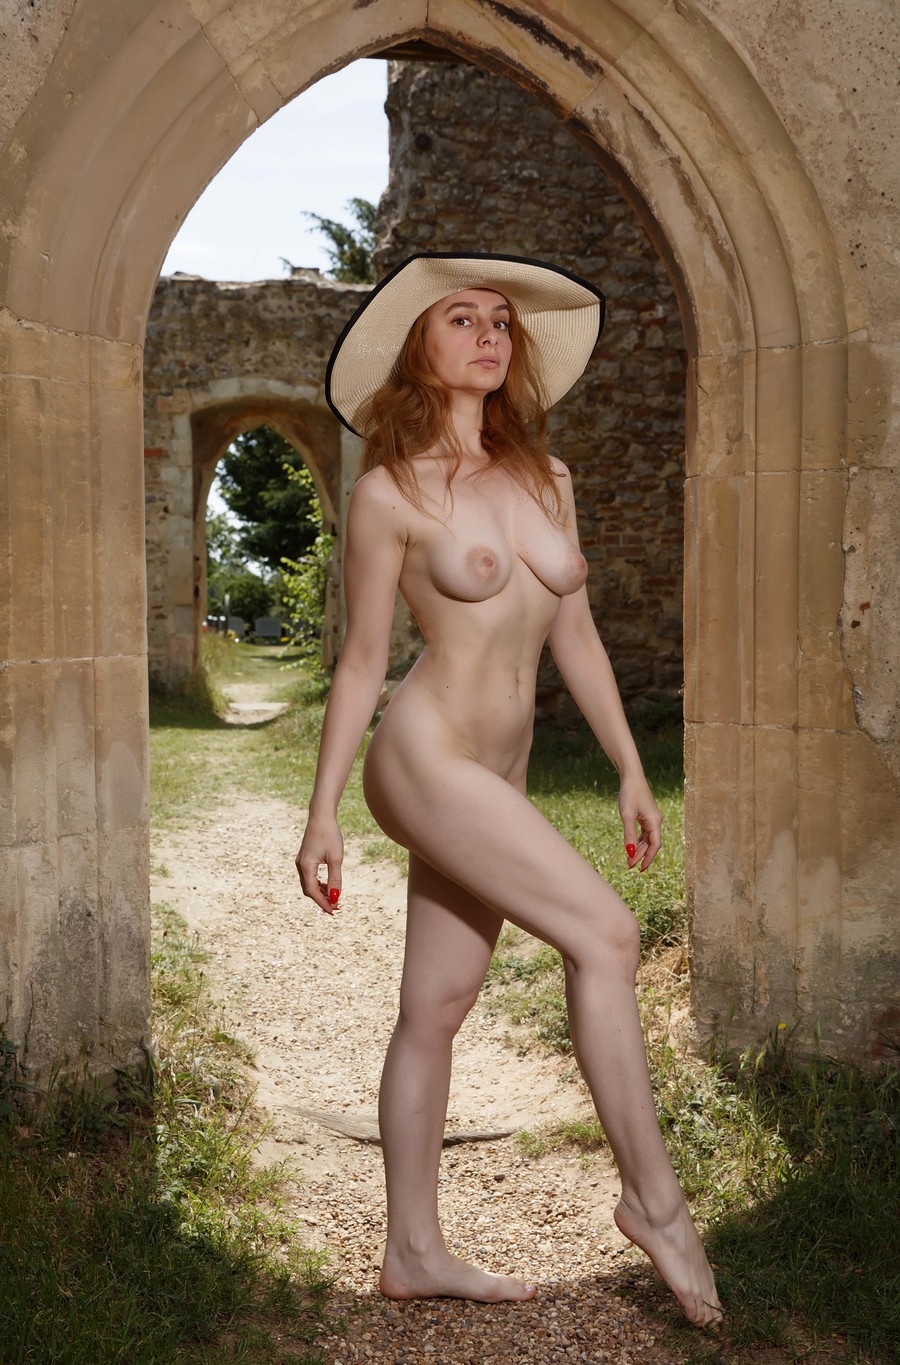 Church ruins with David / Photography by DG Photo Art, Model Cleo P / Uploaded 26th June 2020 @ 01:41 PM